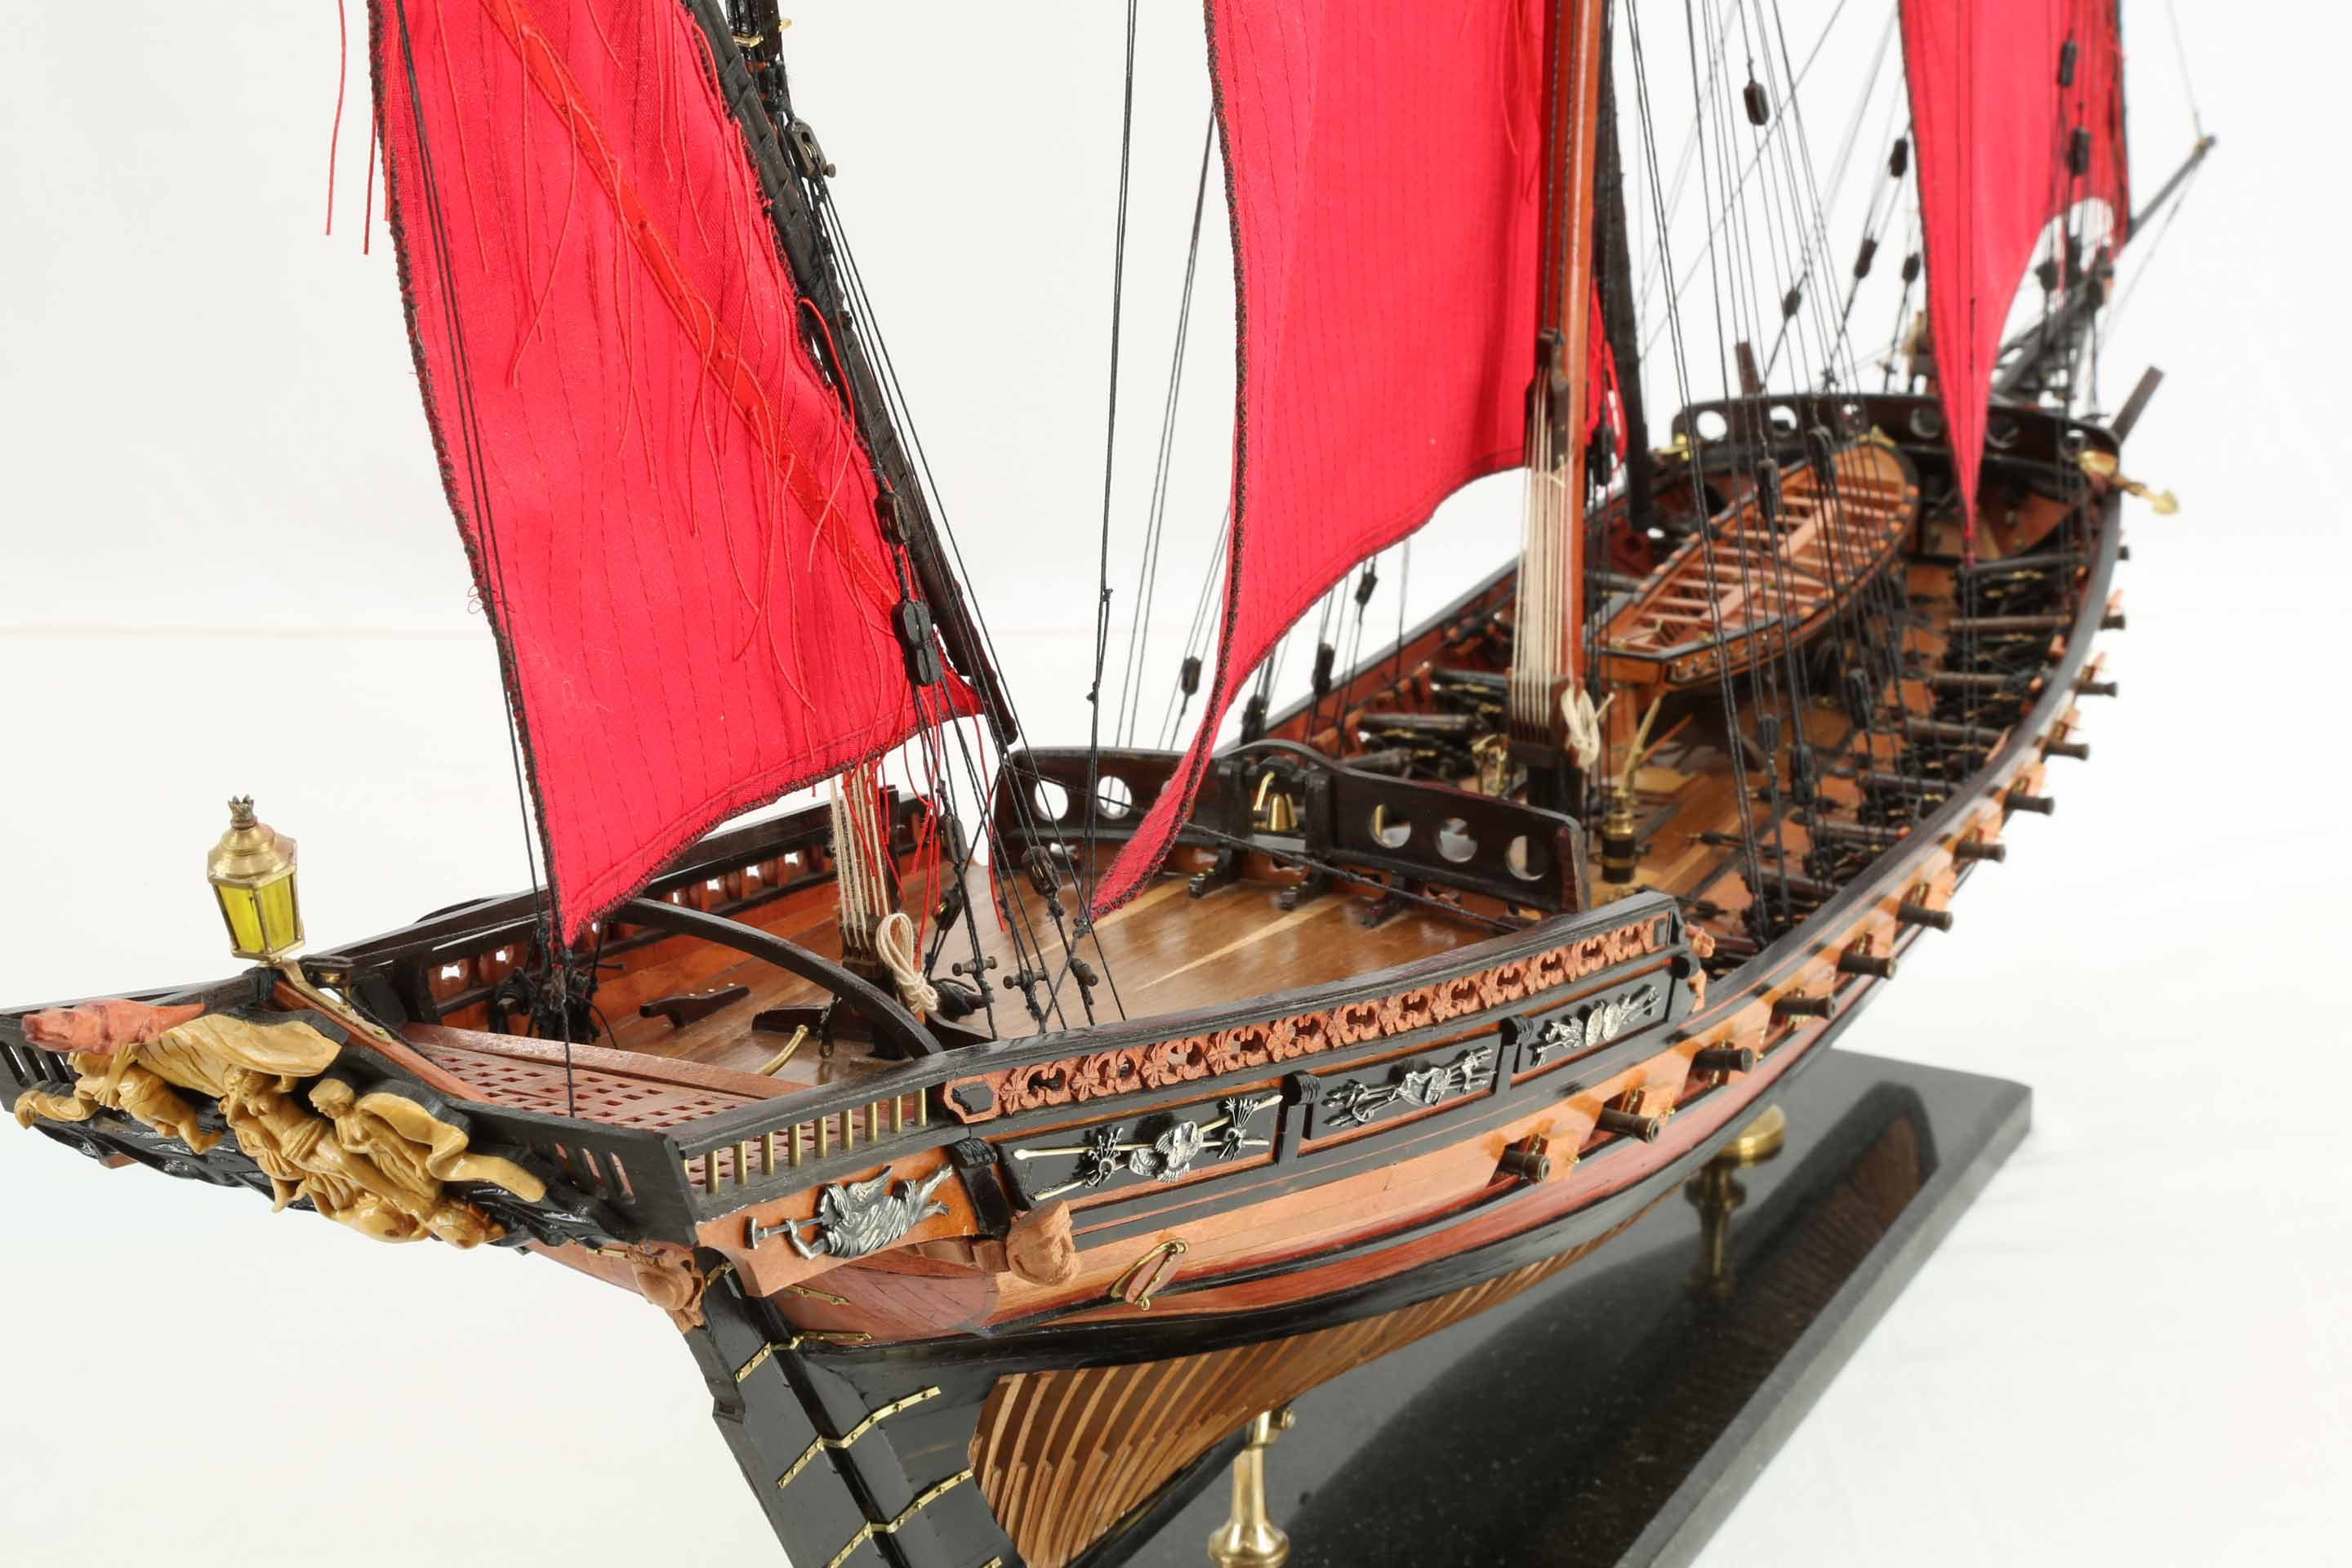 Photos ship model French Chebec Le Requin of 1751, details